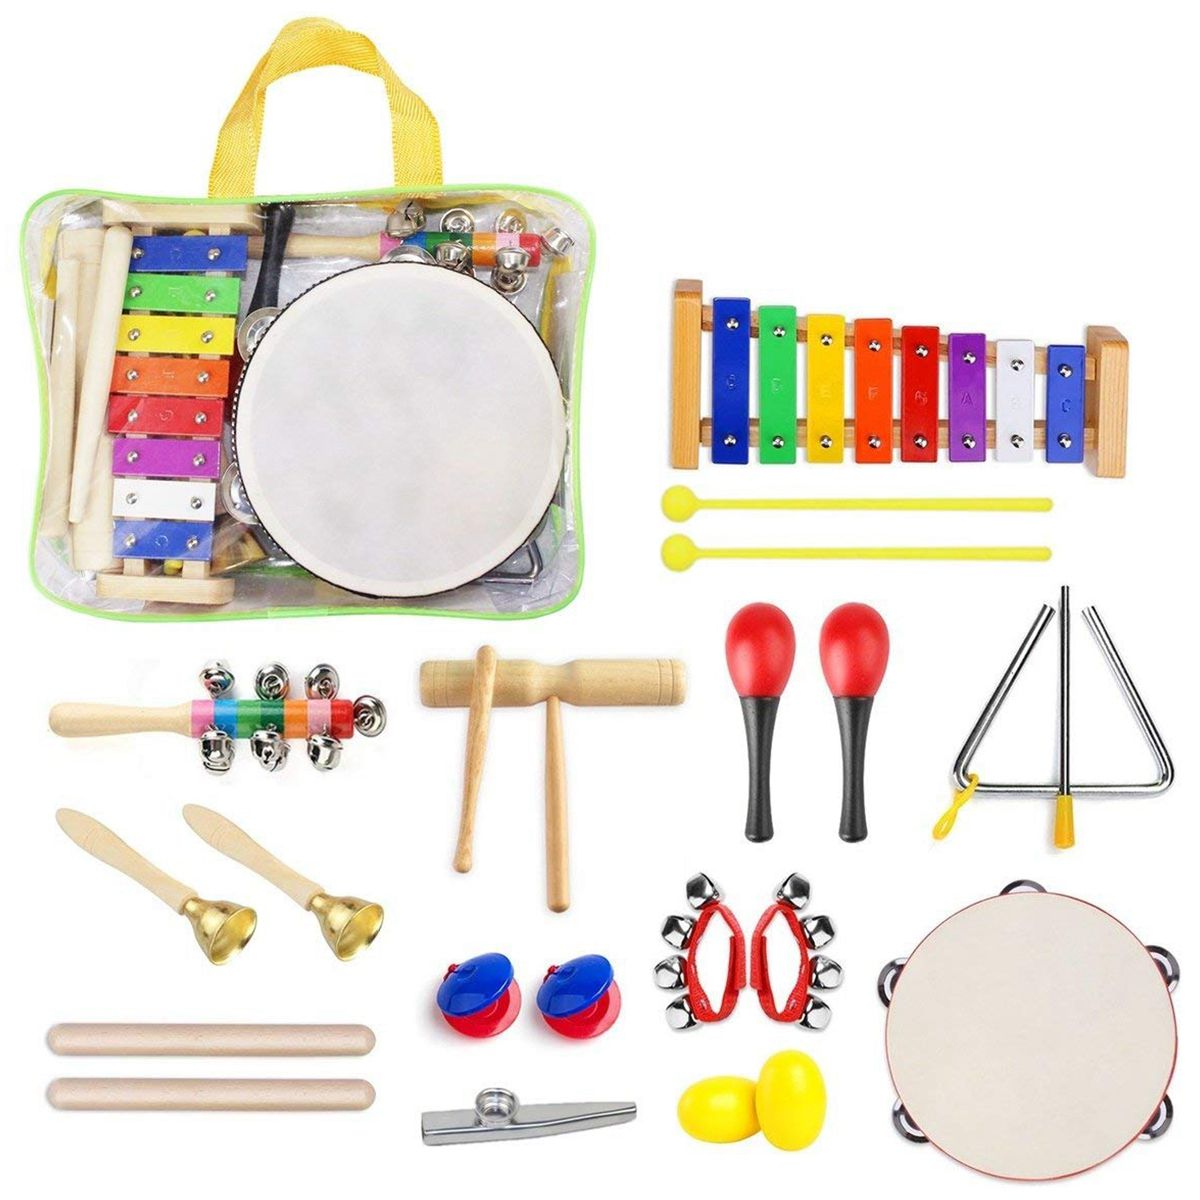 22 Pcs Toddler Musical Instruments Set Percussion Instrument Toys Toddler Musical Toy Set Rhythm Band Set Birthday Gift For Kids